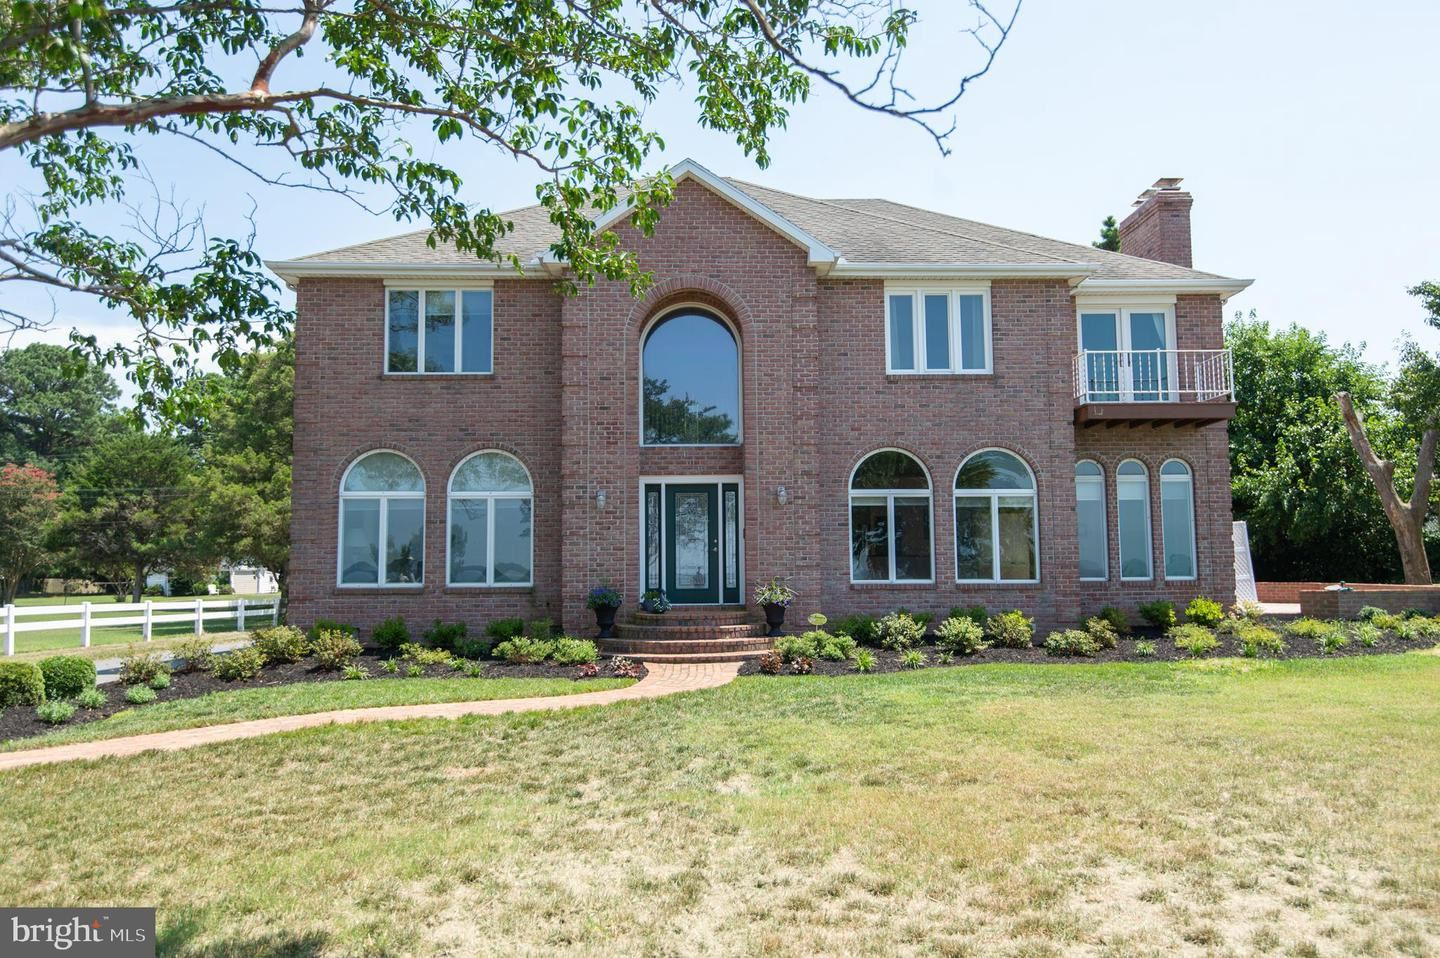 Photo of 108 RIVERSIDE DR, CAMBRIDGE, MD 21613 (MLS # MDDO125754)